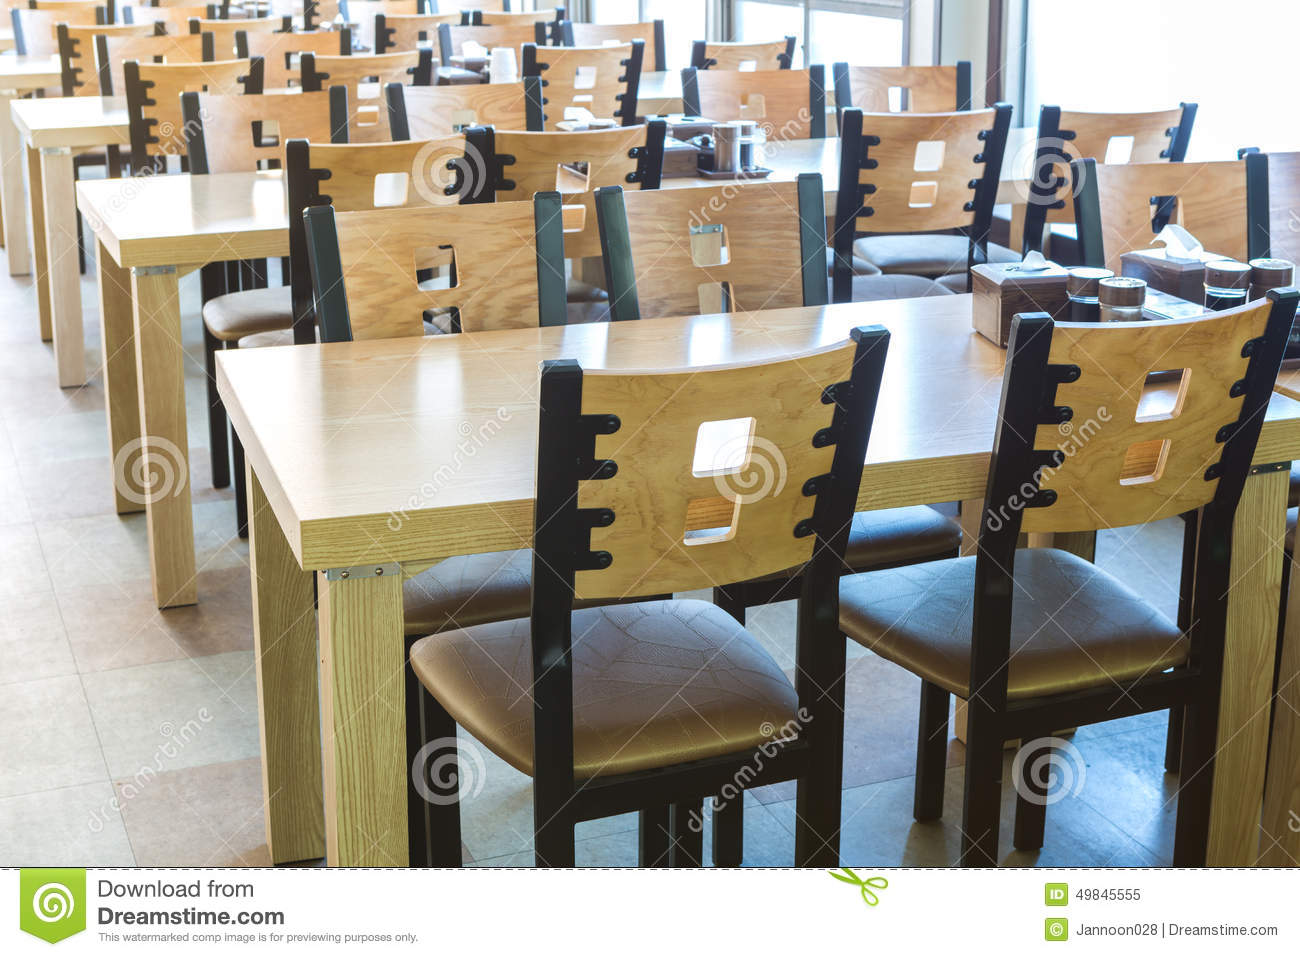 Tables Et Chaises Restaurant Table Et Chaise En Bois Au Restaurant Image Stock - Image